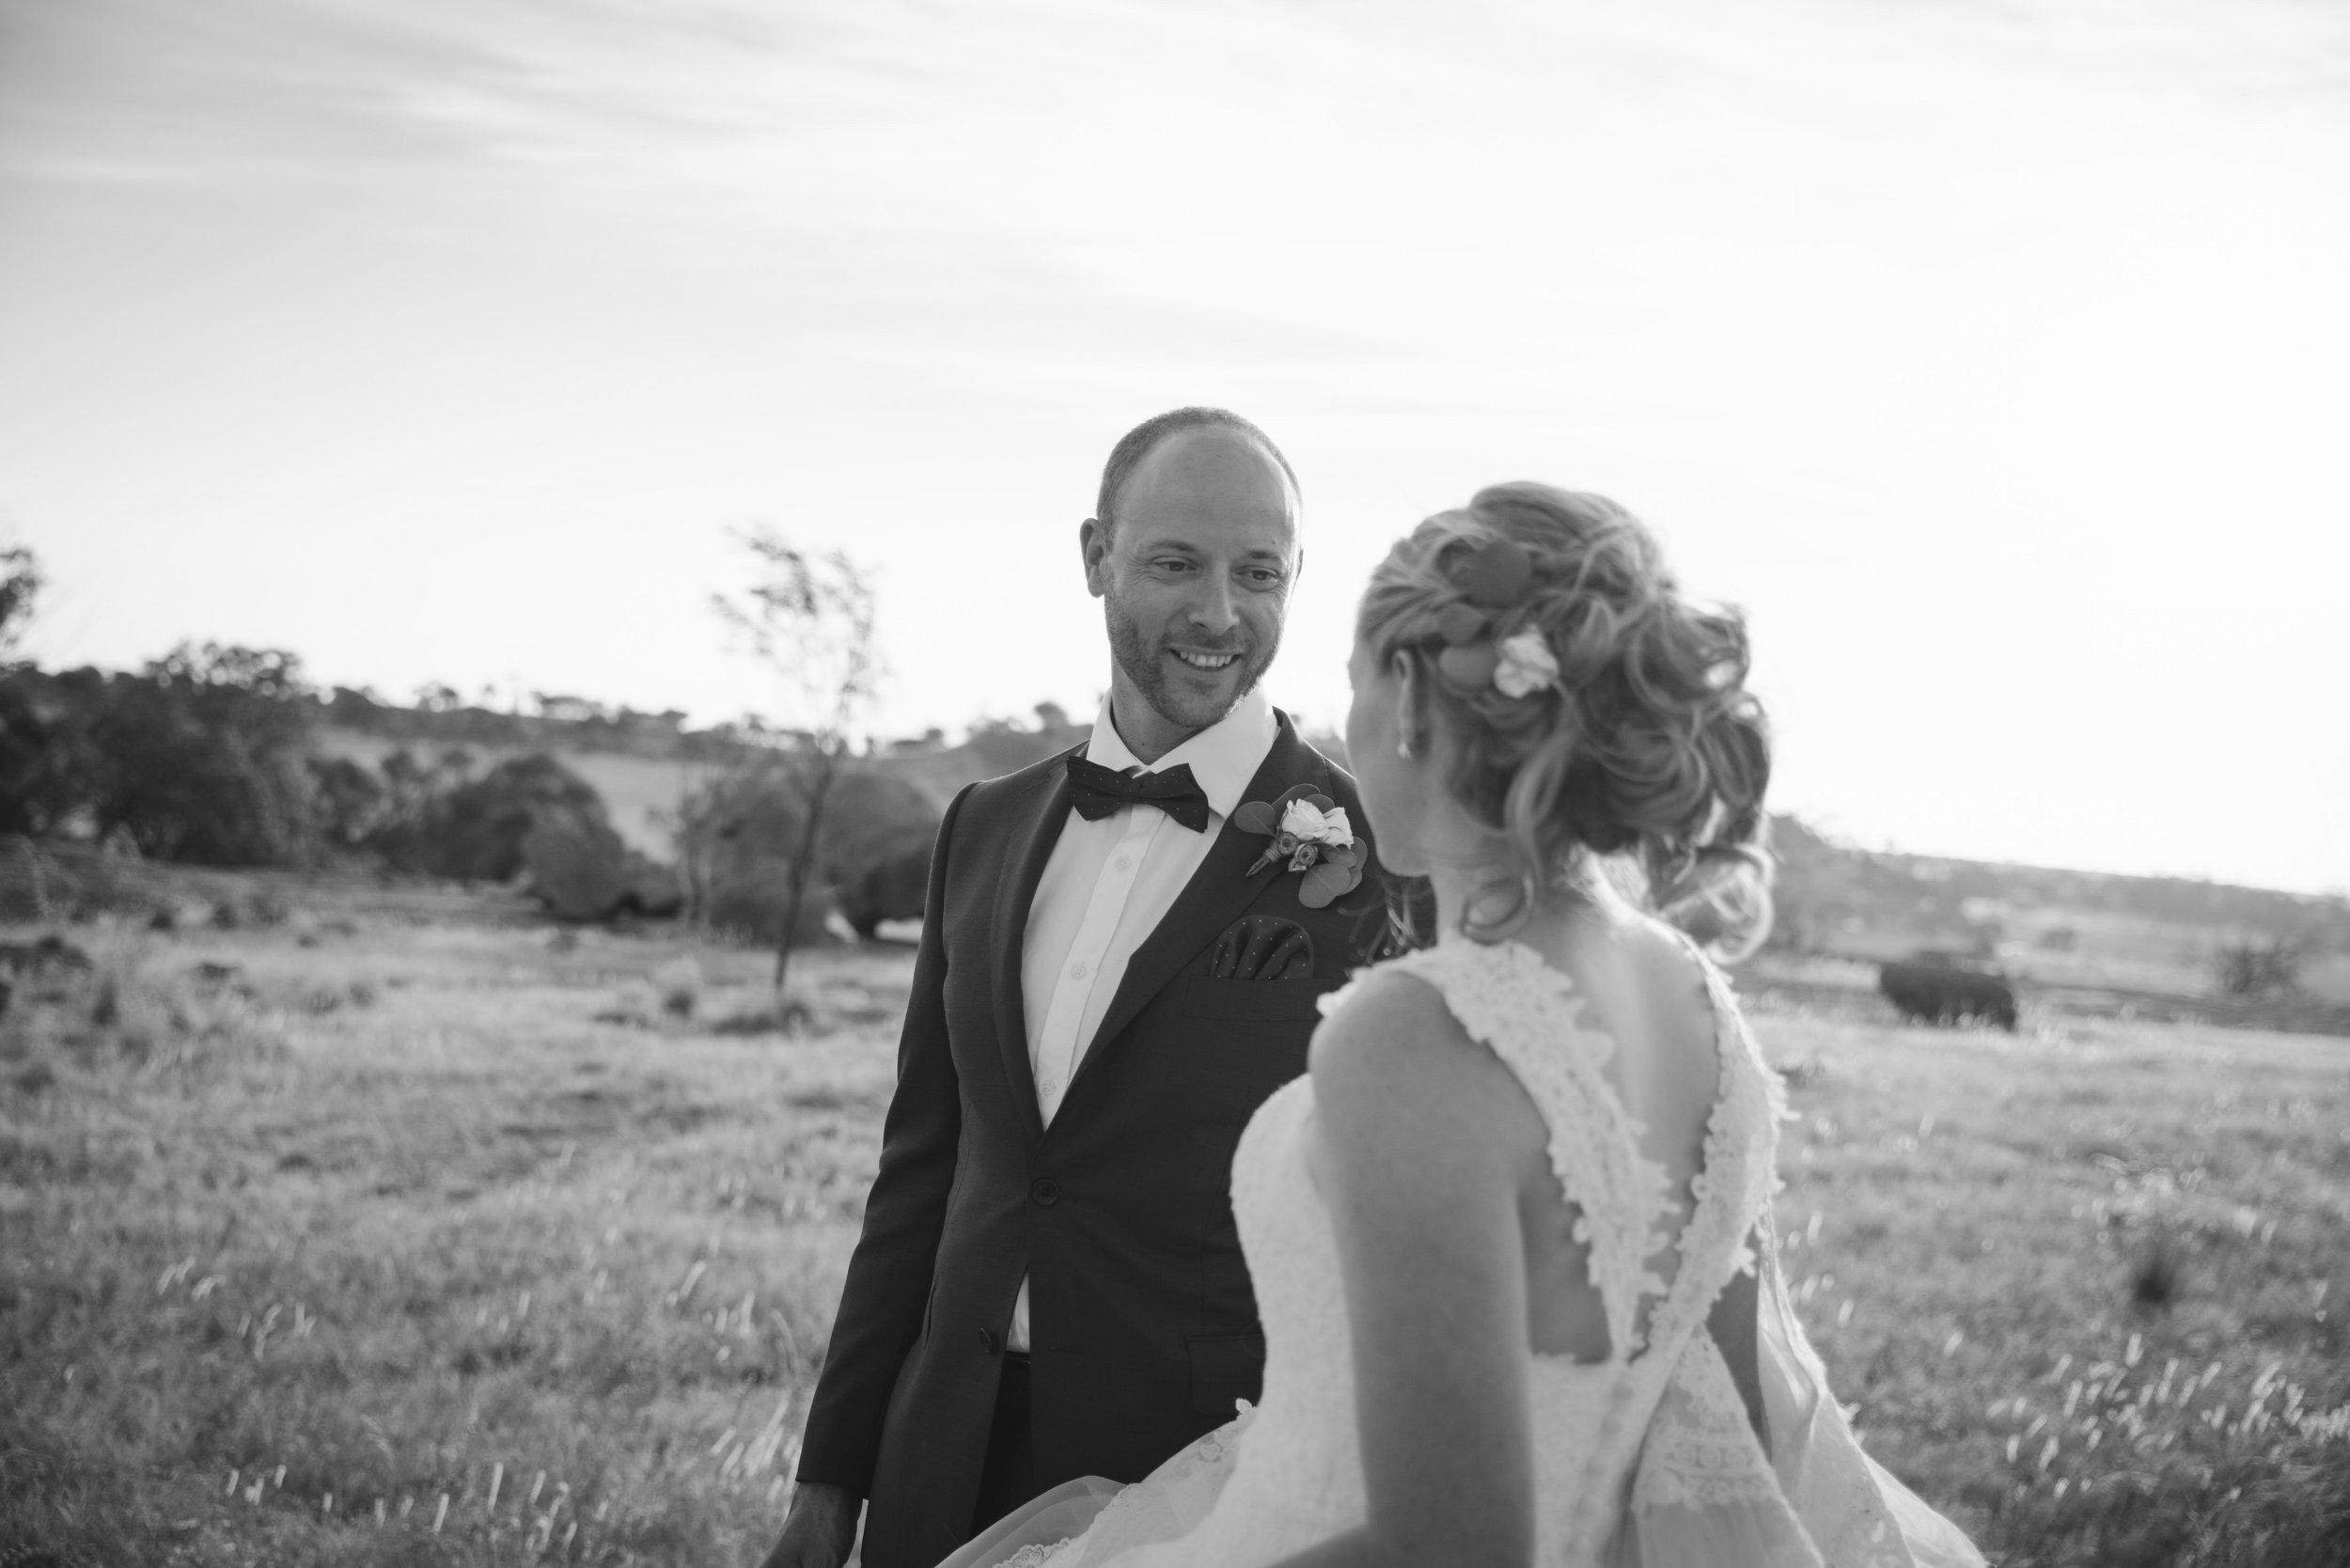 Wheatbelt Merredin Rustic Rural Farm Wedding (58).jpg